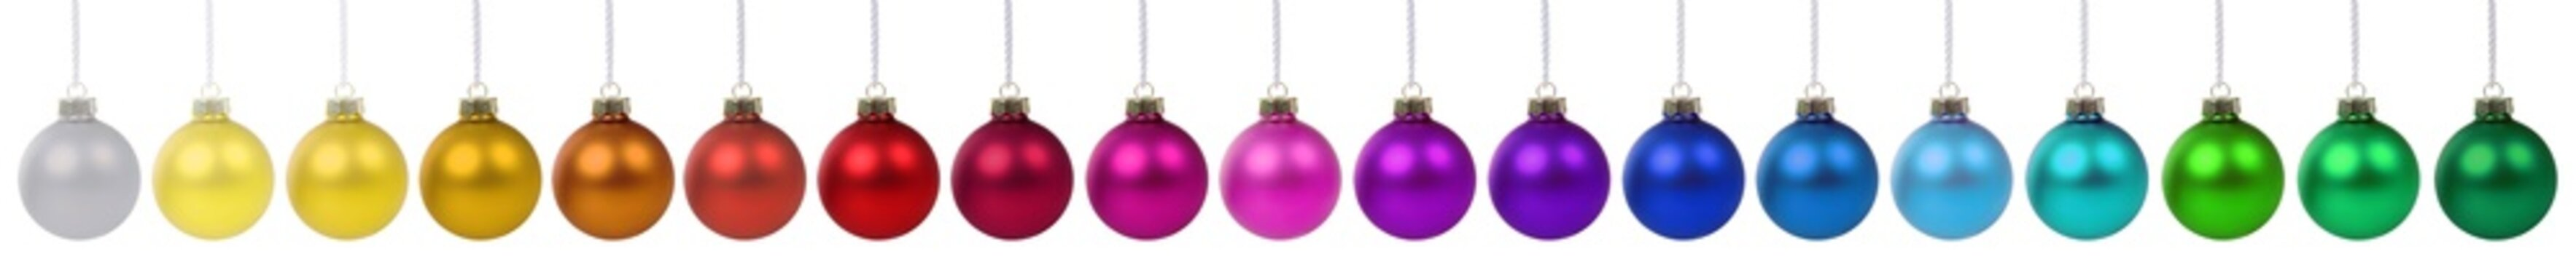 Christmas balls decoration banner colorful in a row isolated on white